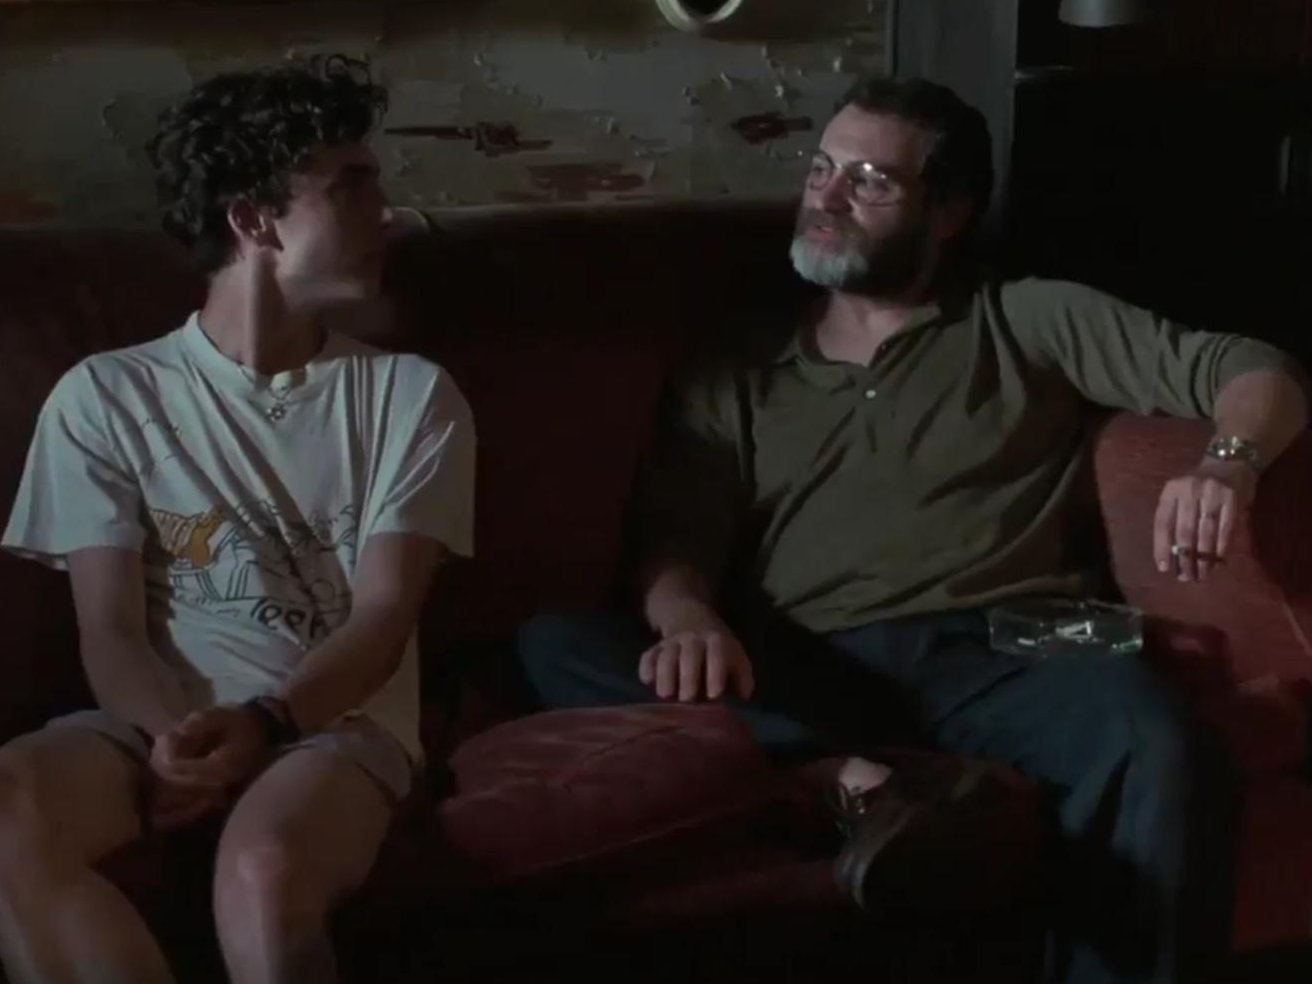 michael-stuhlbarg-and-timothee-chalamet-in-call-me-by-your-name